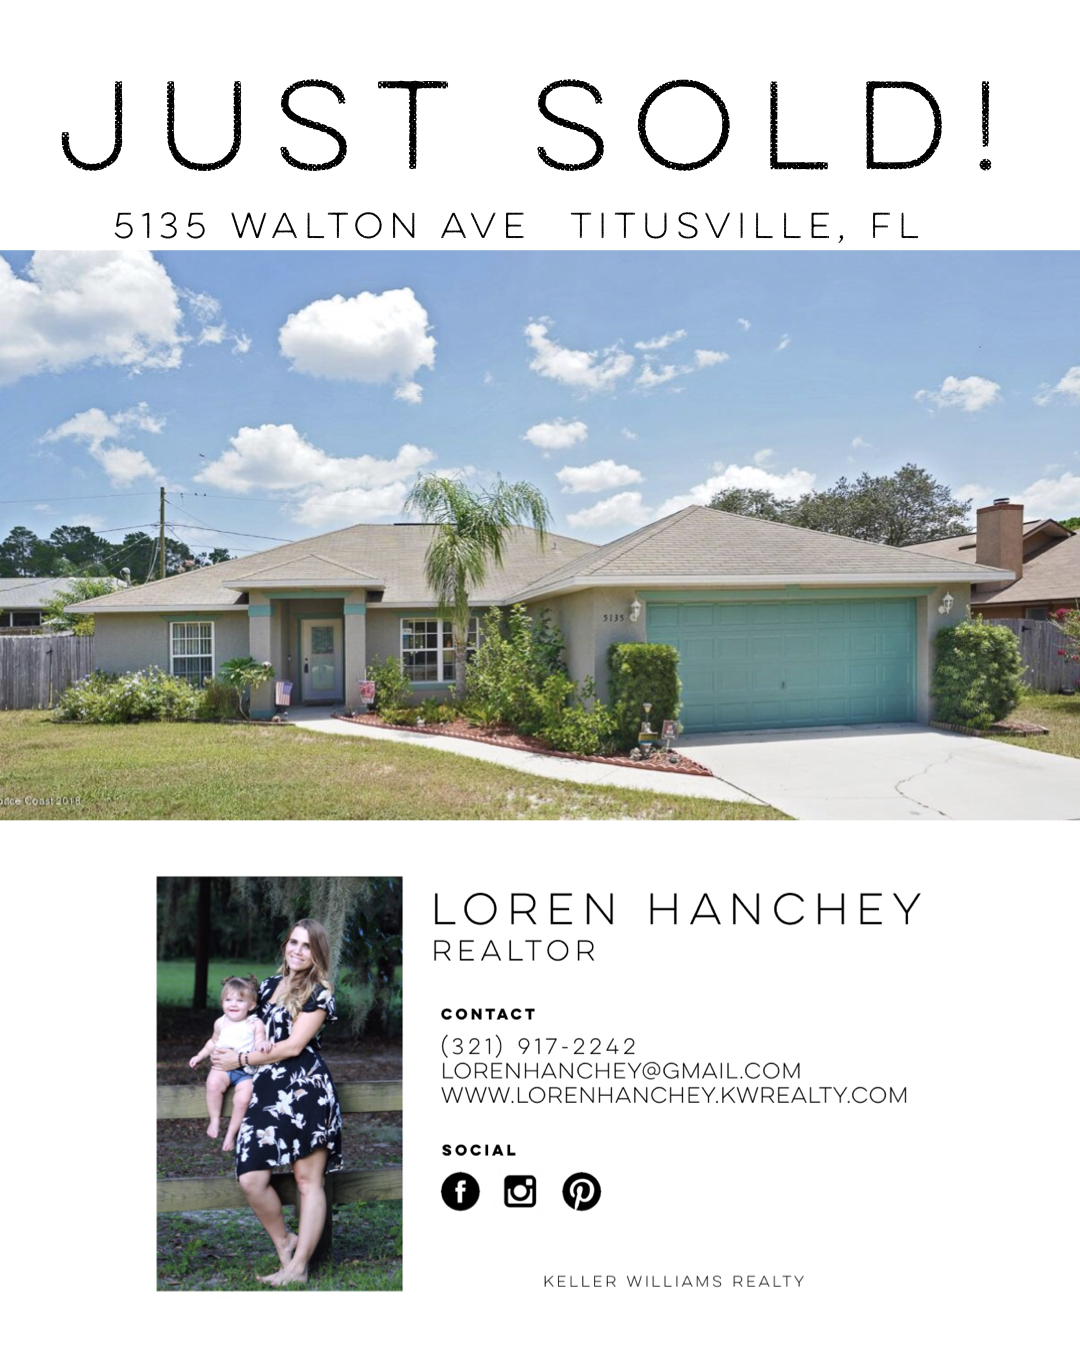 Just Sold Real Estate Marketing Real Estate Realty